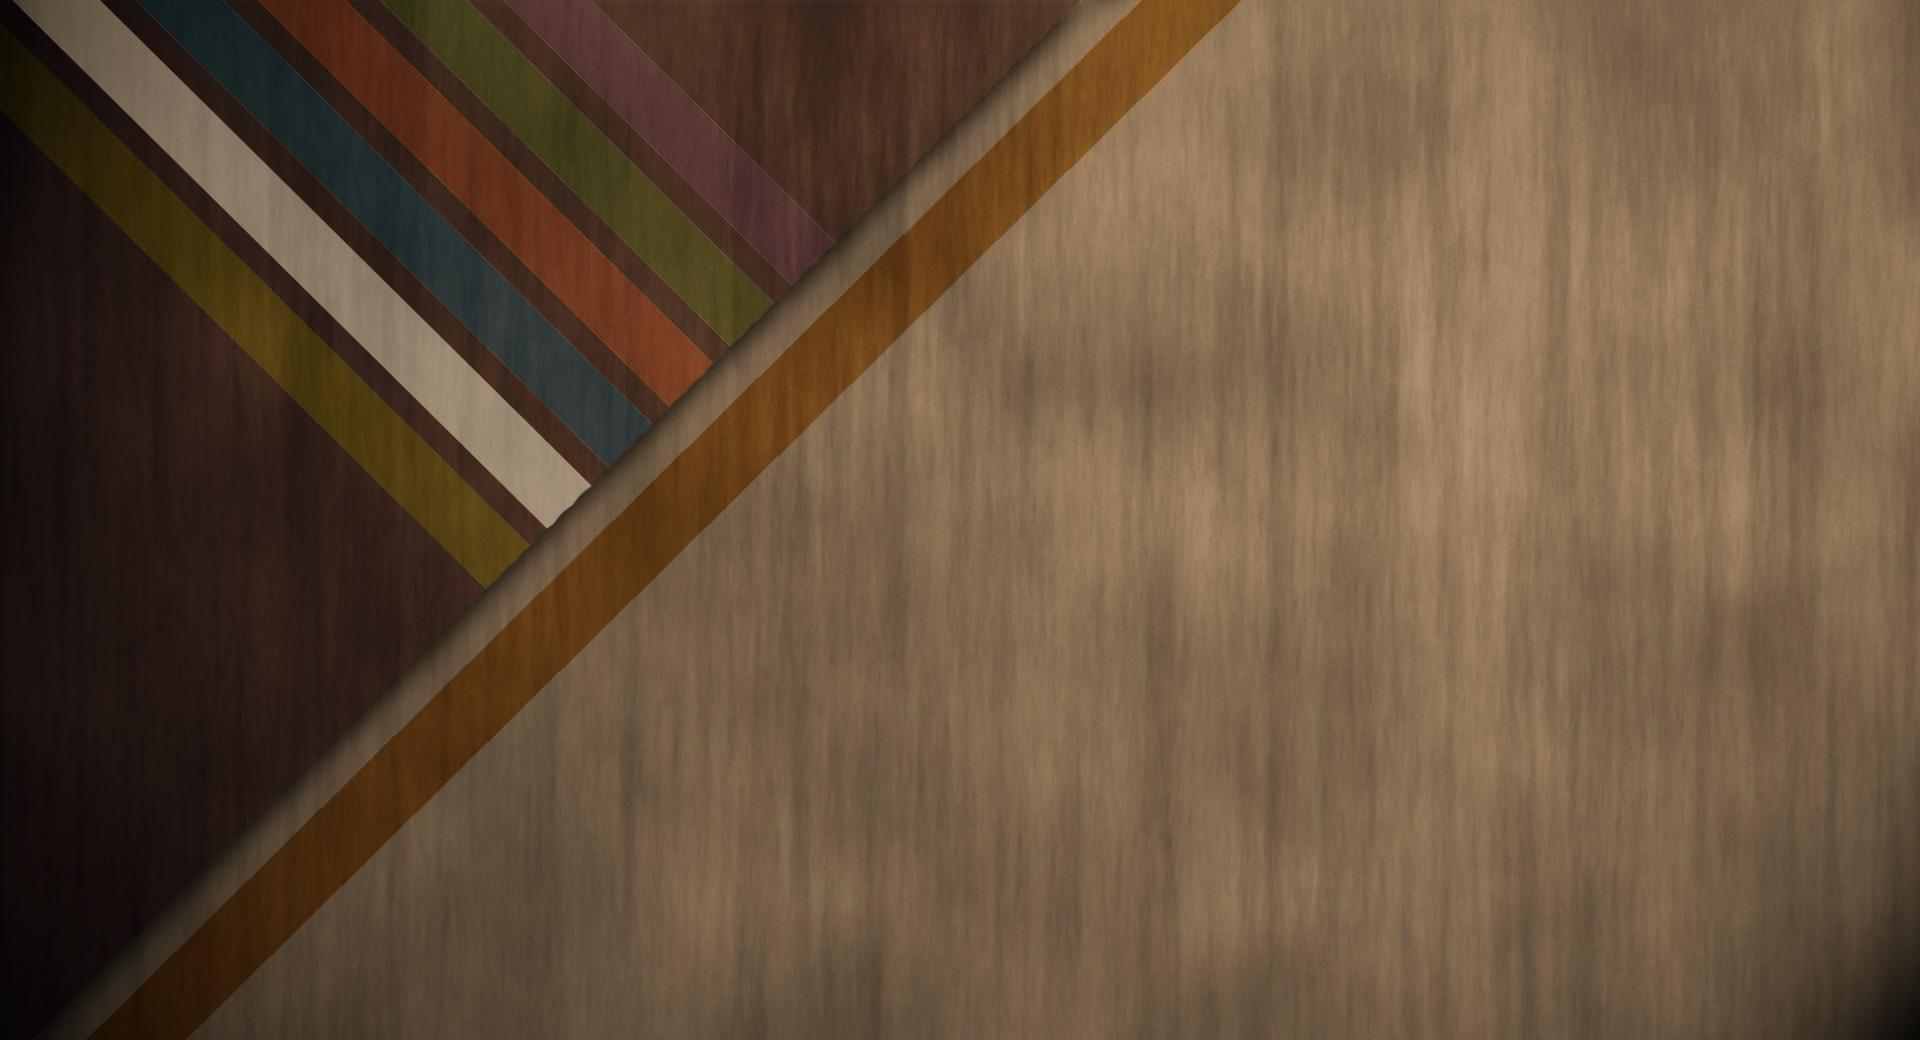 Abstract Wood Colors wallpapers HD quality